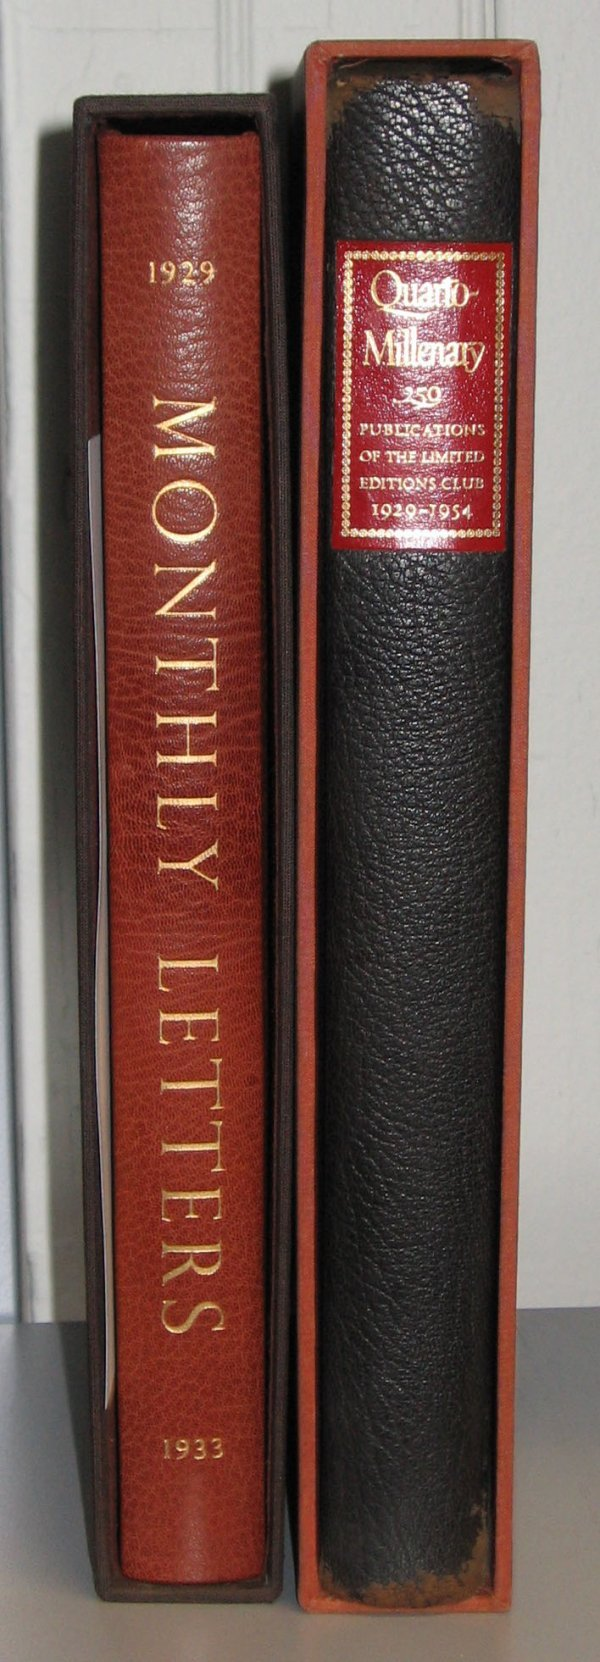 1020: 2 vols. (Limited Editions Club of New York.) Refe